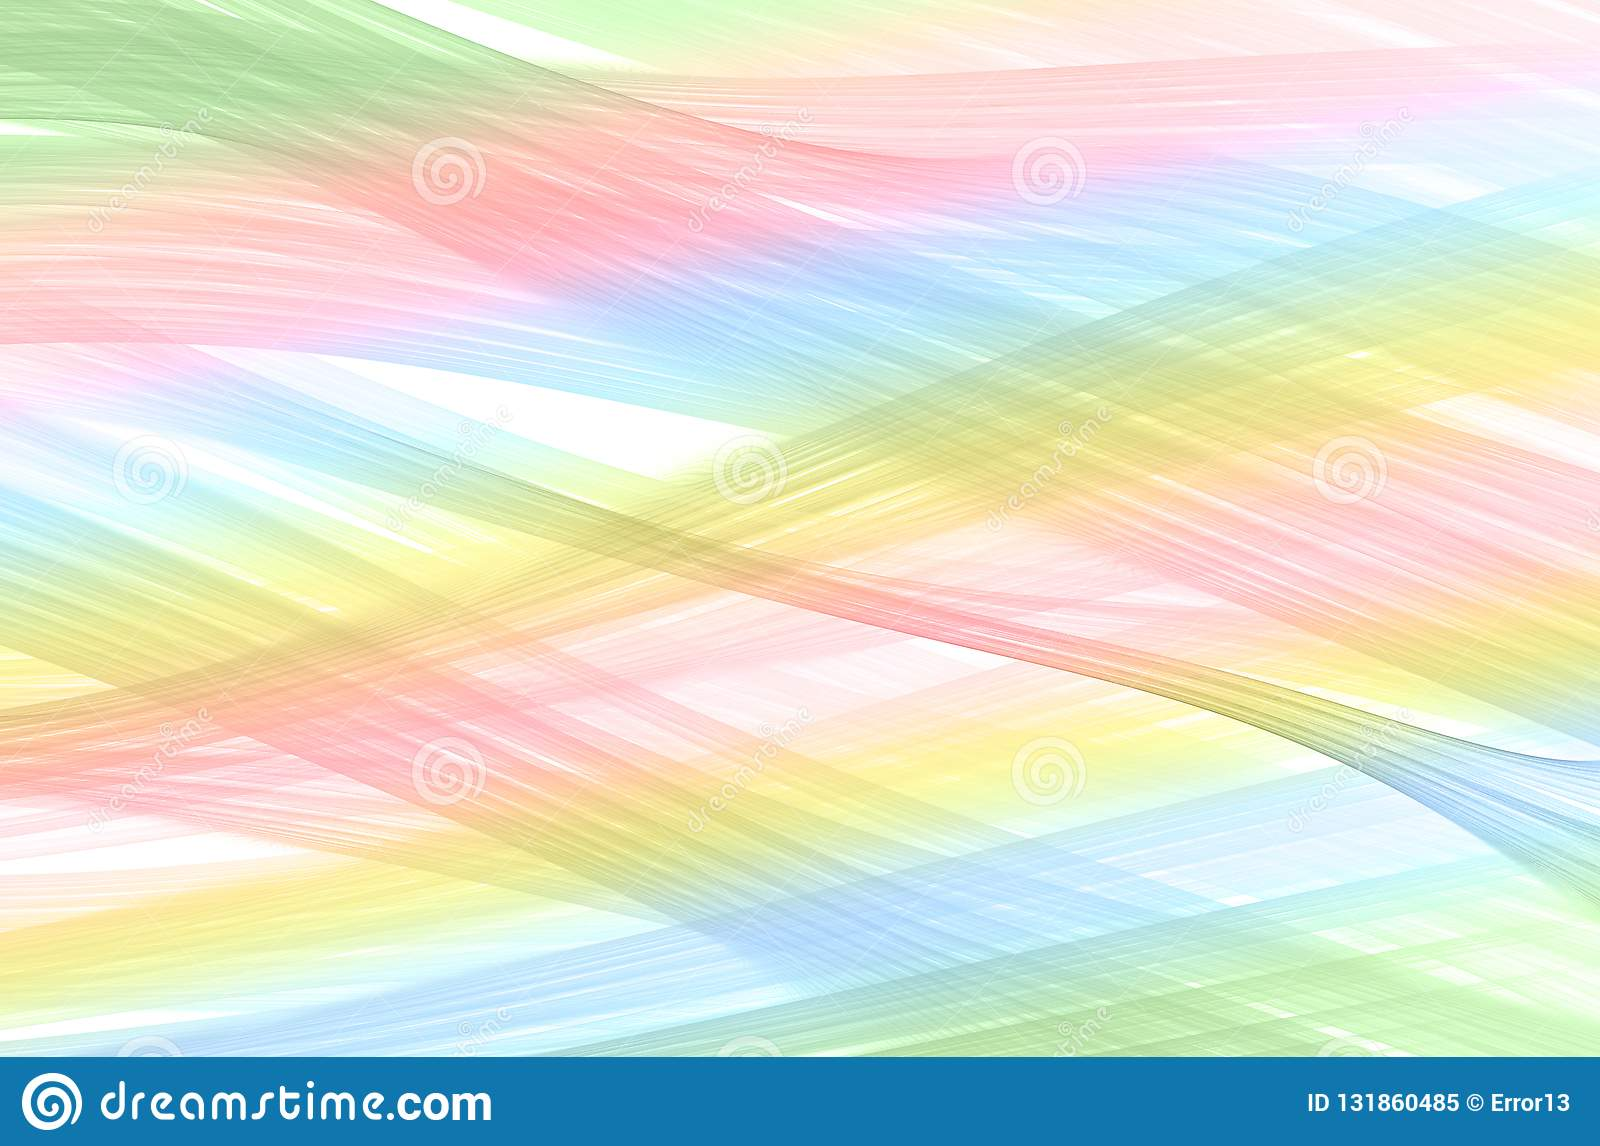 Light Color Texture In Pastel Colors Stock Illustration - Illustration of  wallpaper, fibers: 131860485